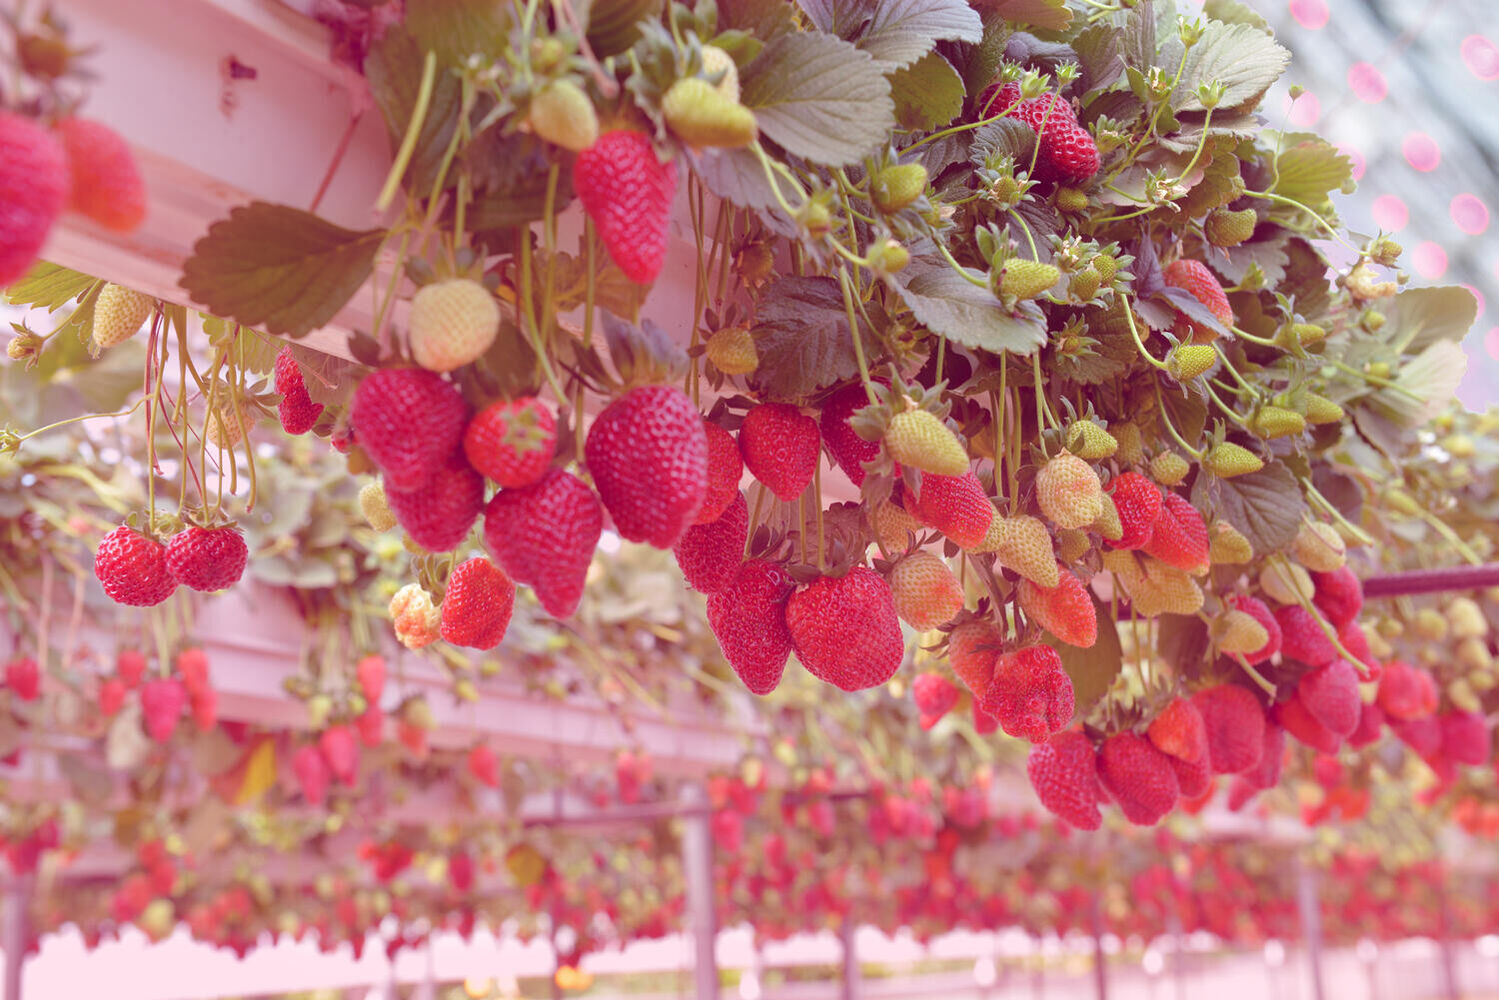 HortiDaily: Belgian strawberry grower goes for hybrid lighting in new greenhouse